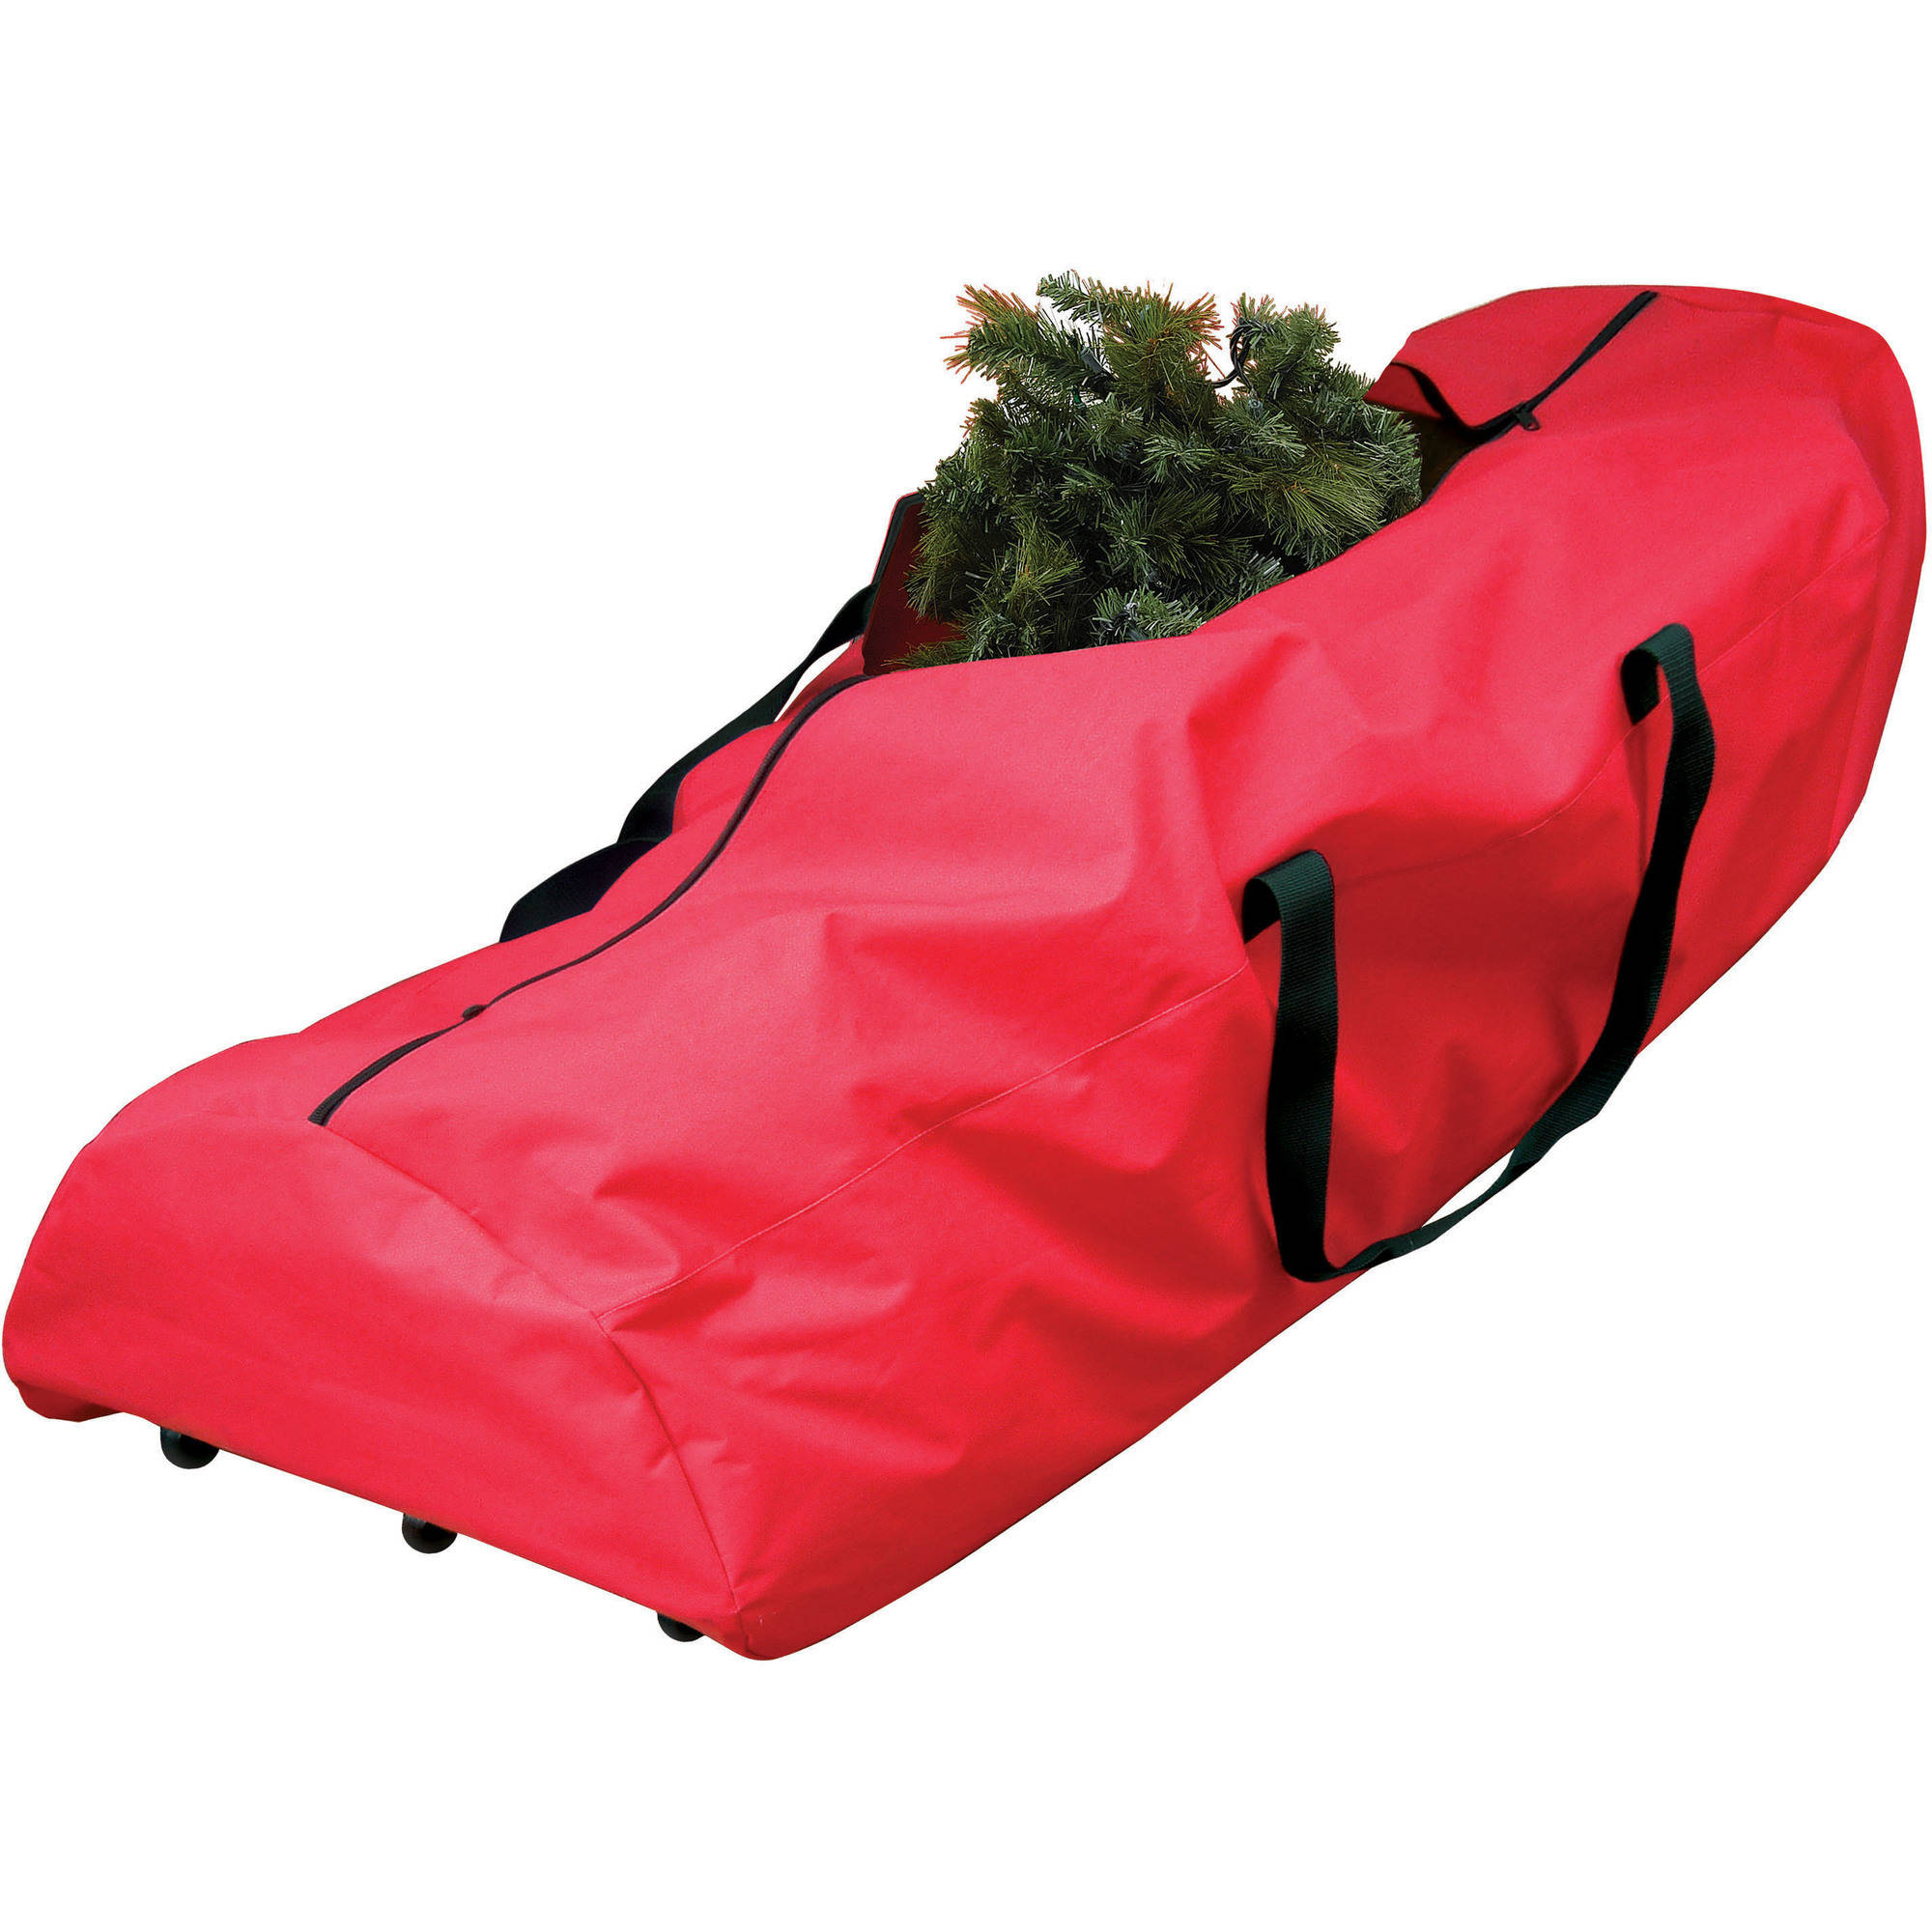 Holiday Time Artificial Christmas Trees 7.5' Artificial Tree Rolling Storage Bag, Red